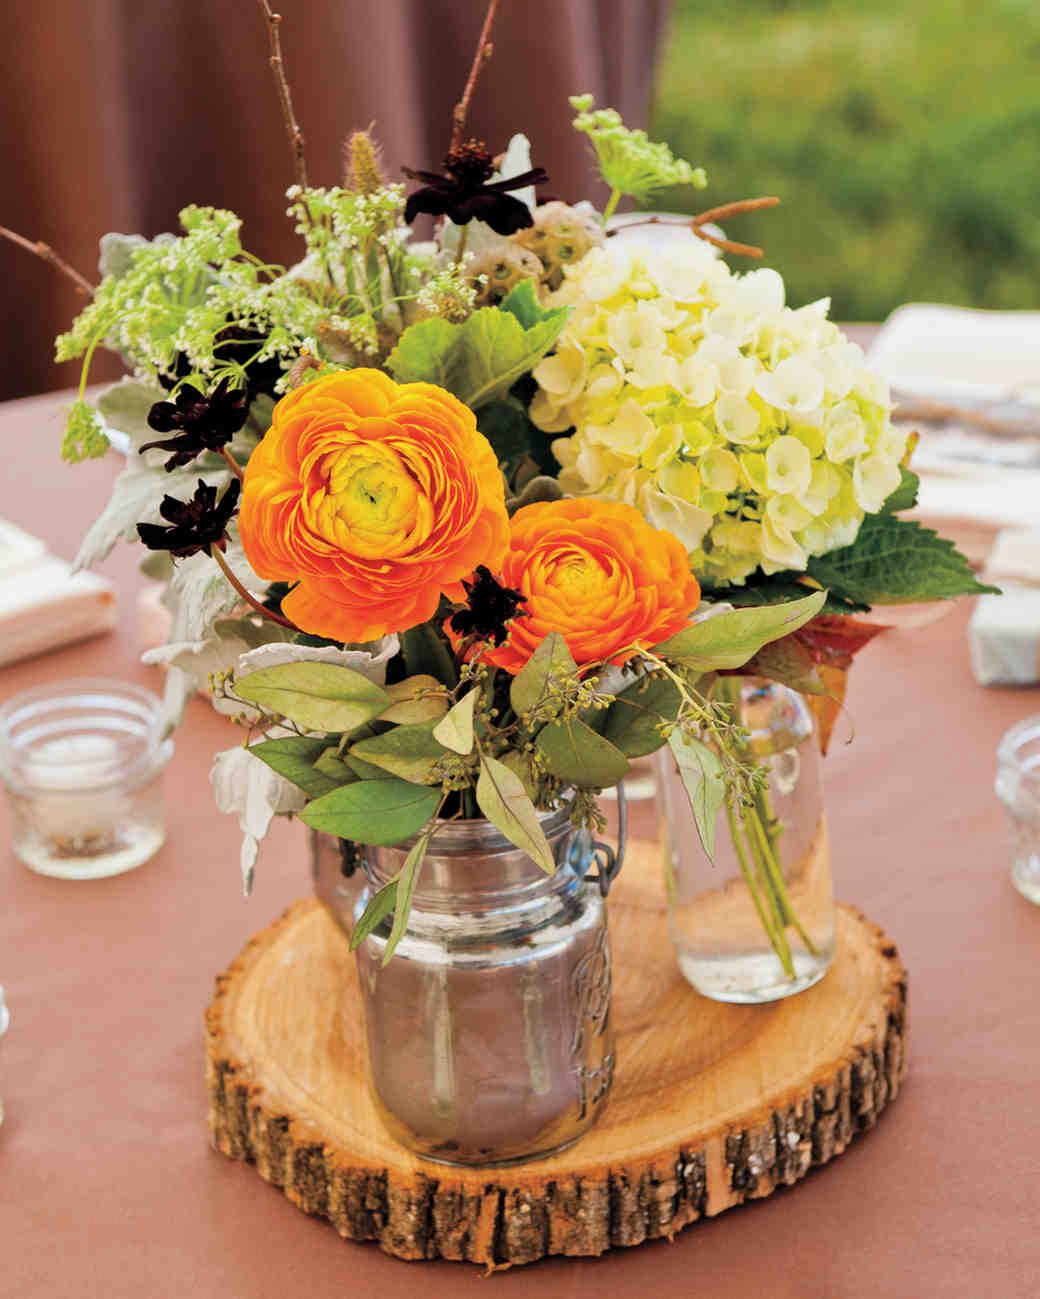 Cheap Wedding Table Decorations Ideas: Cheap Wedding Decoration Centerpieces Ideas